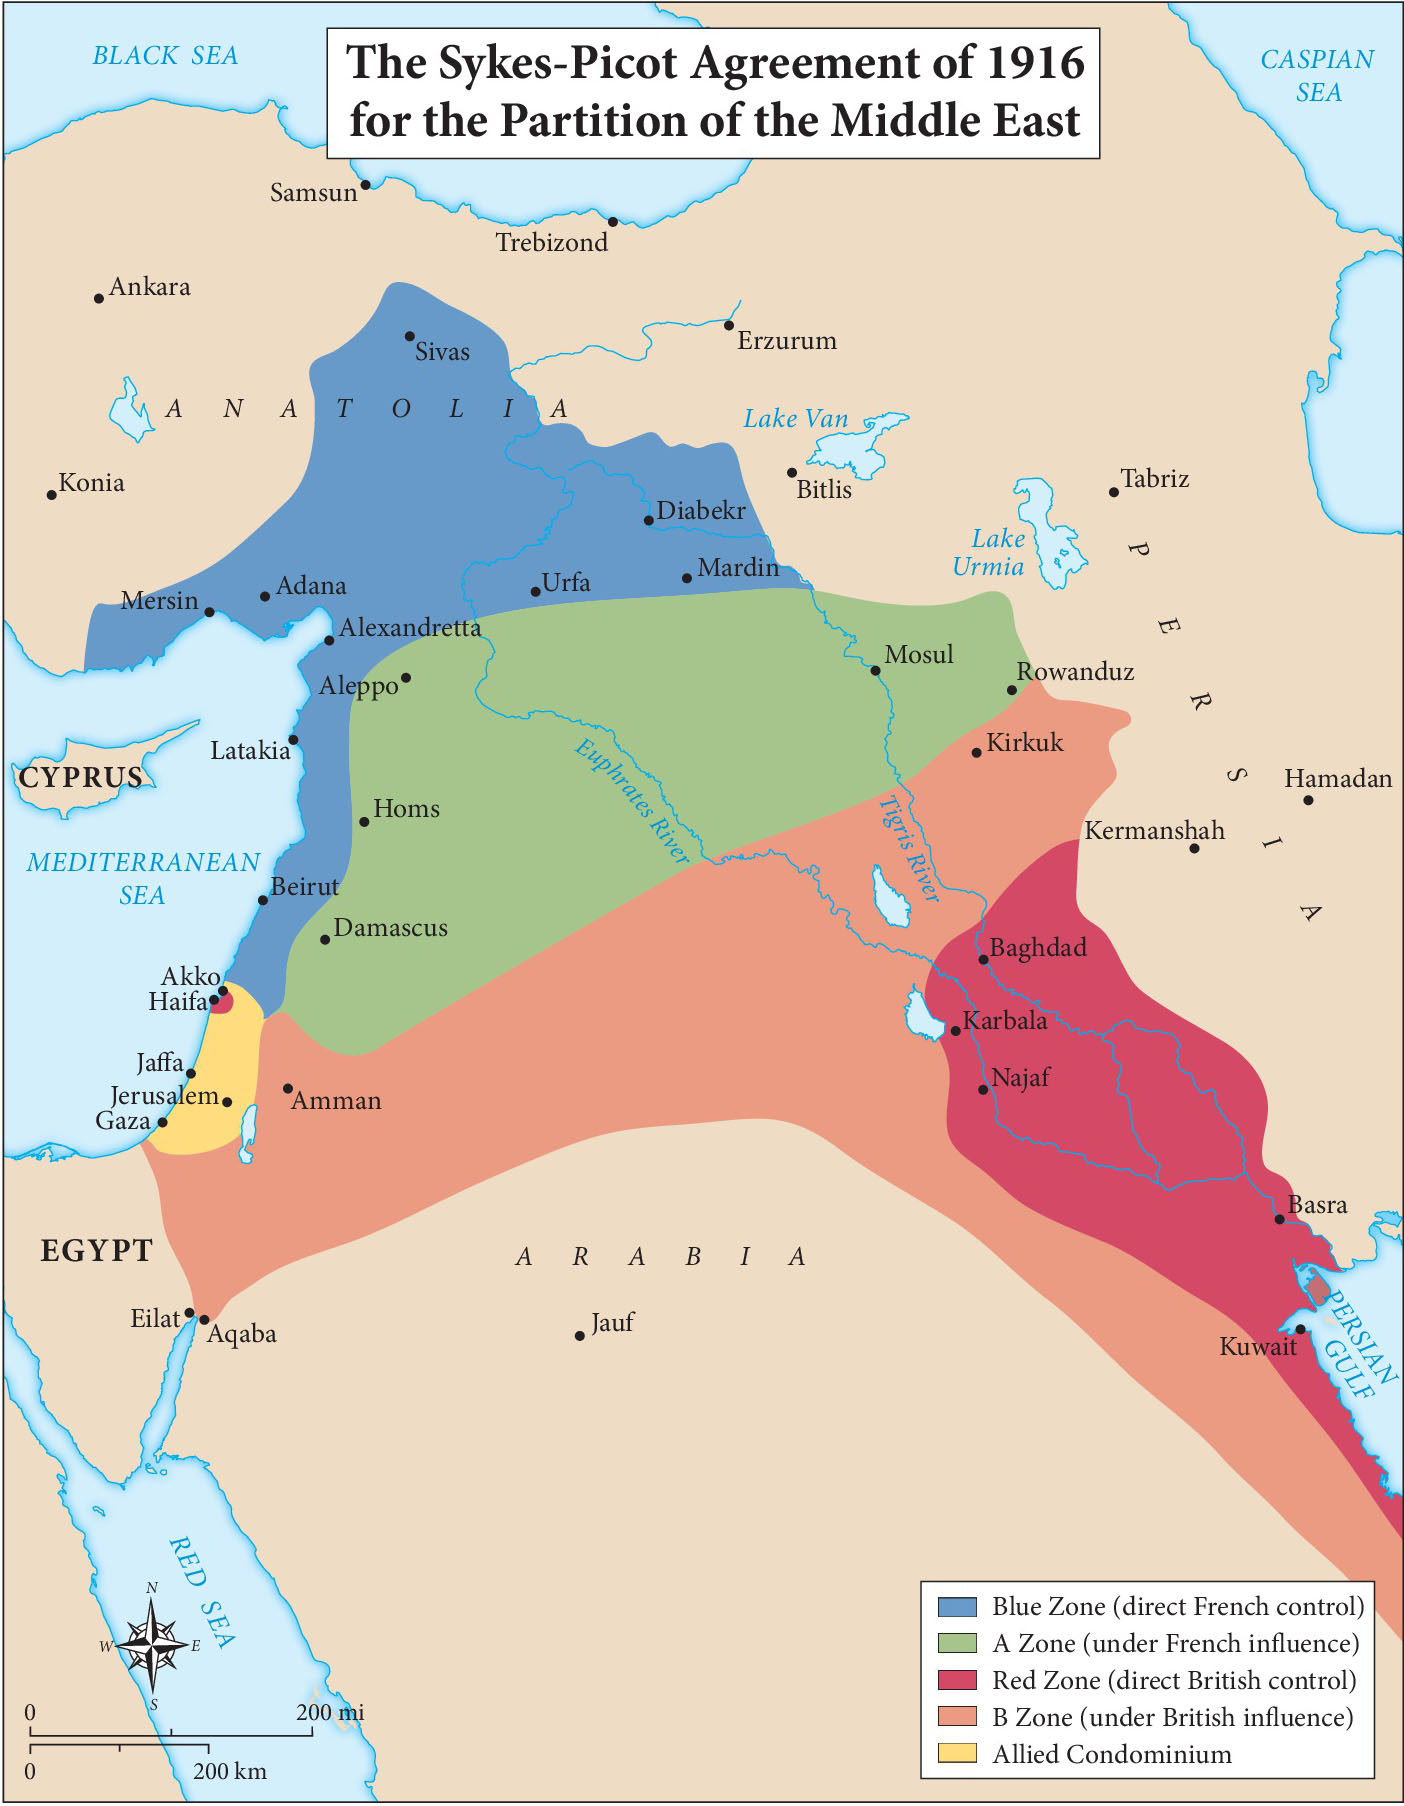 the sykes picot agreement of 1916 Sykes-picot agreement, 1916introductionthe sykes-picot agreement (1916) was a secret wartime treaty between britain and france it was named after its chief negotiators, mark sykes of britain and georges picot of france.